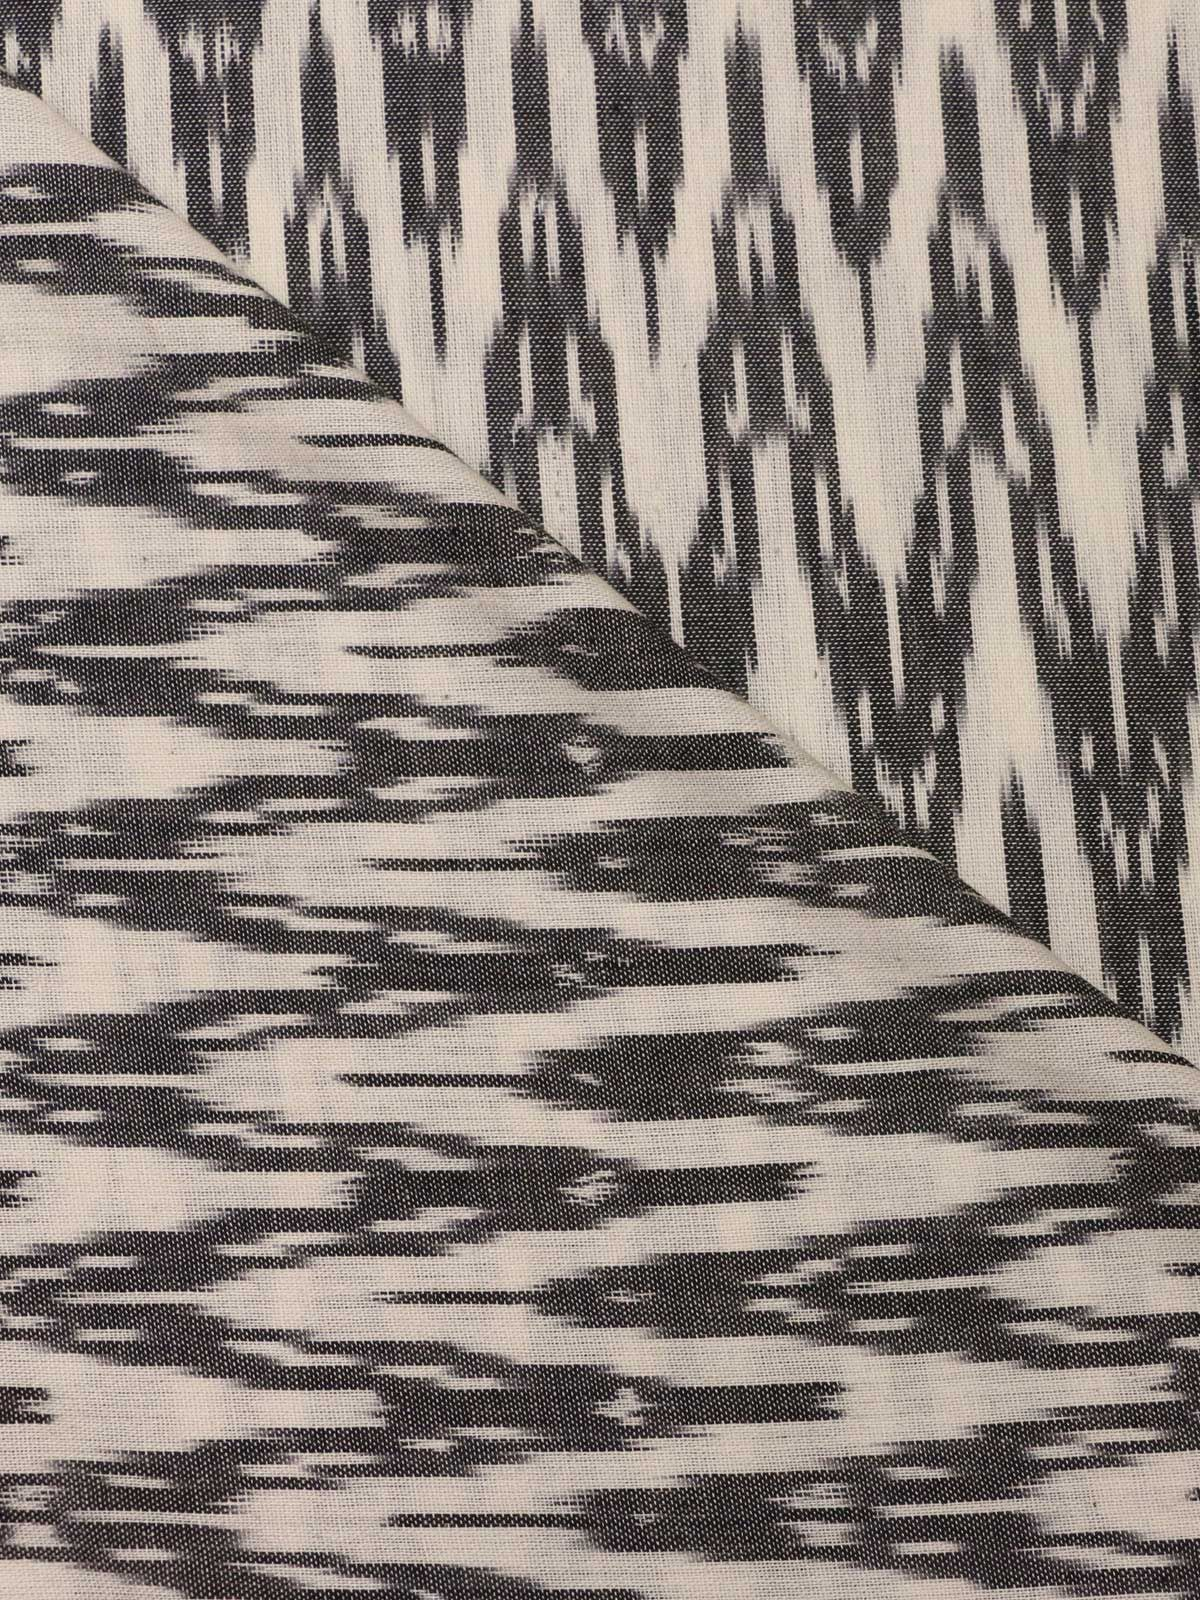 White grey ikat handloom cotton fabric